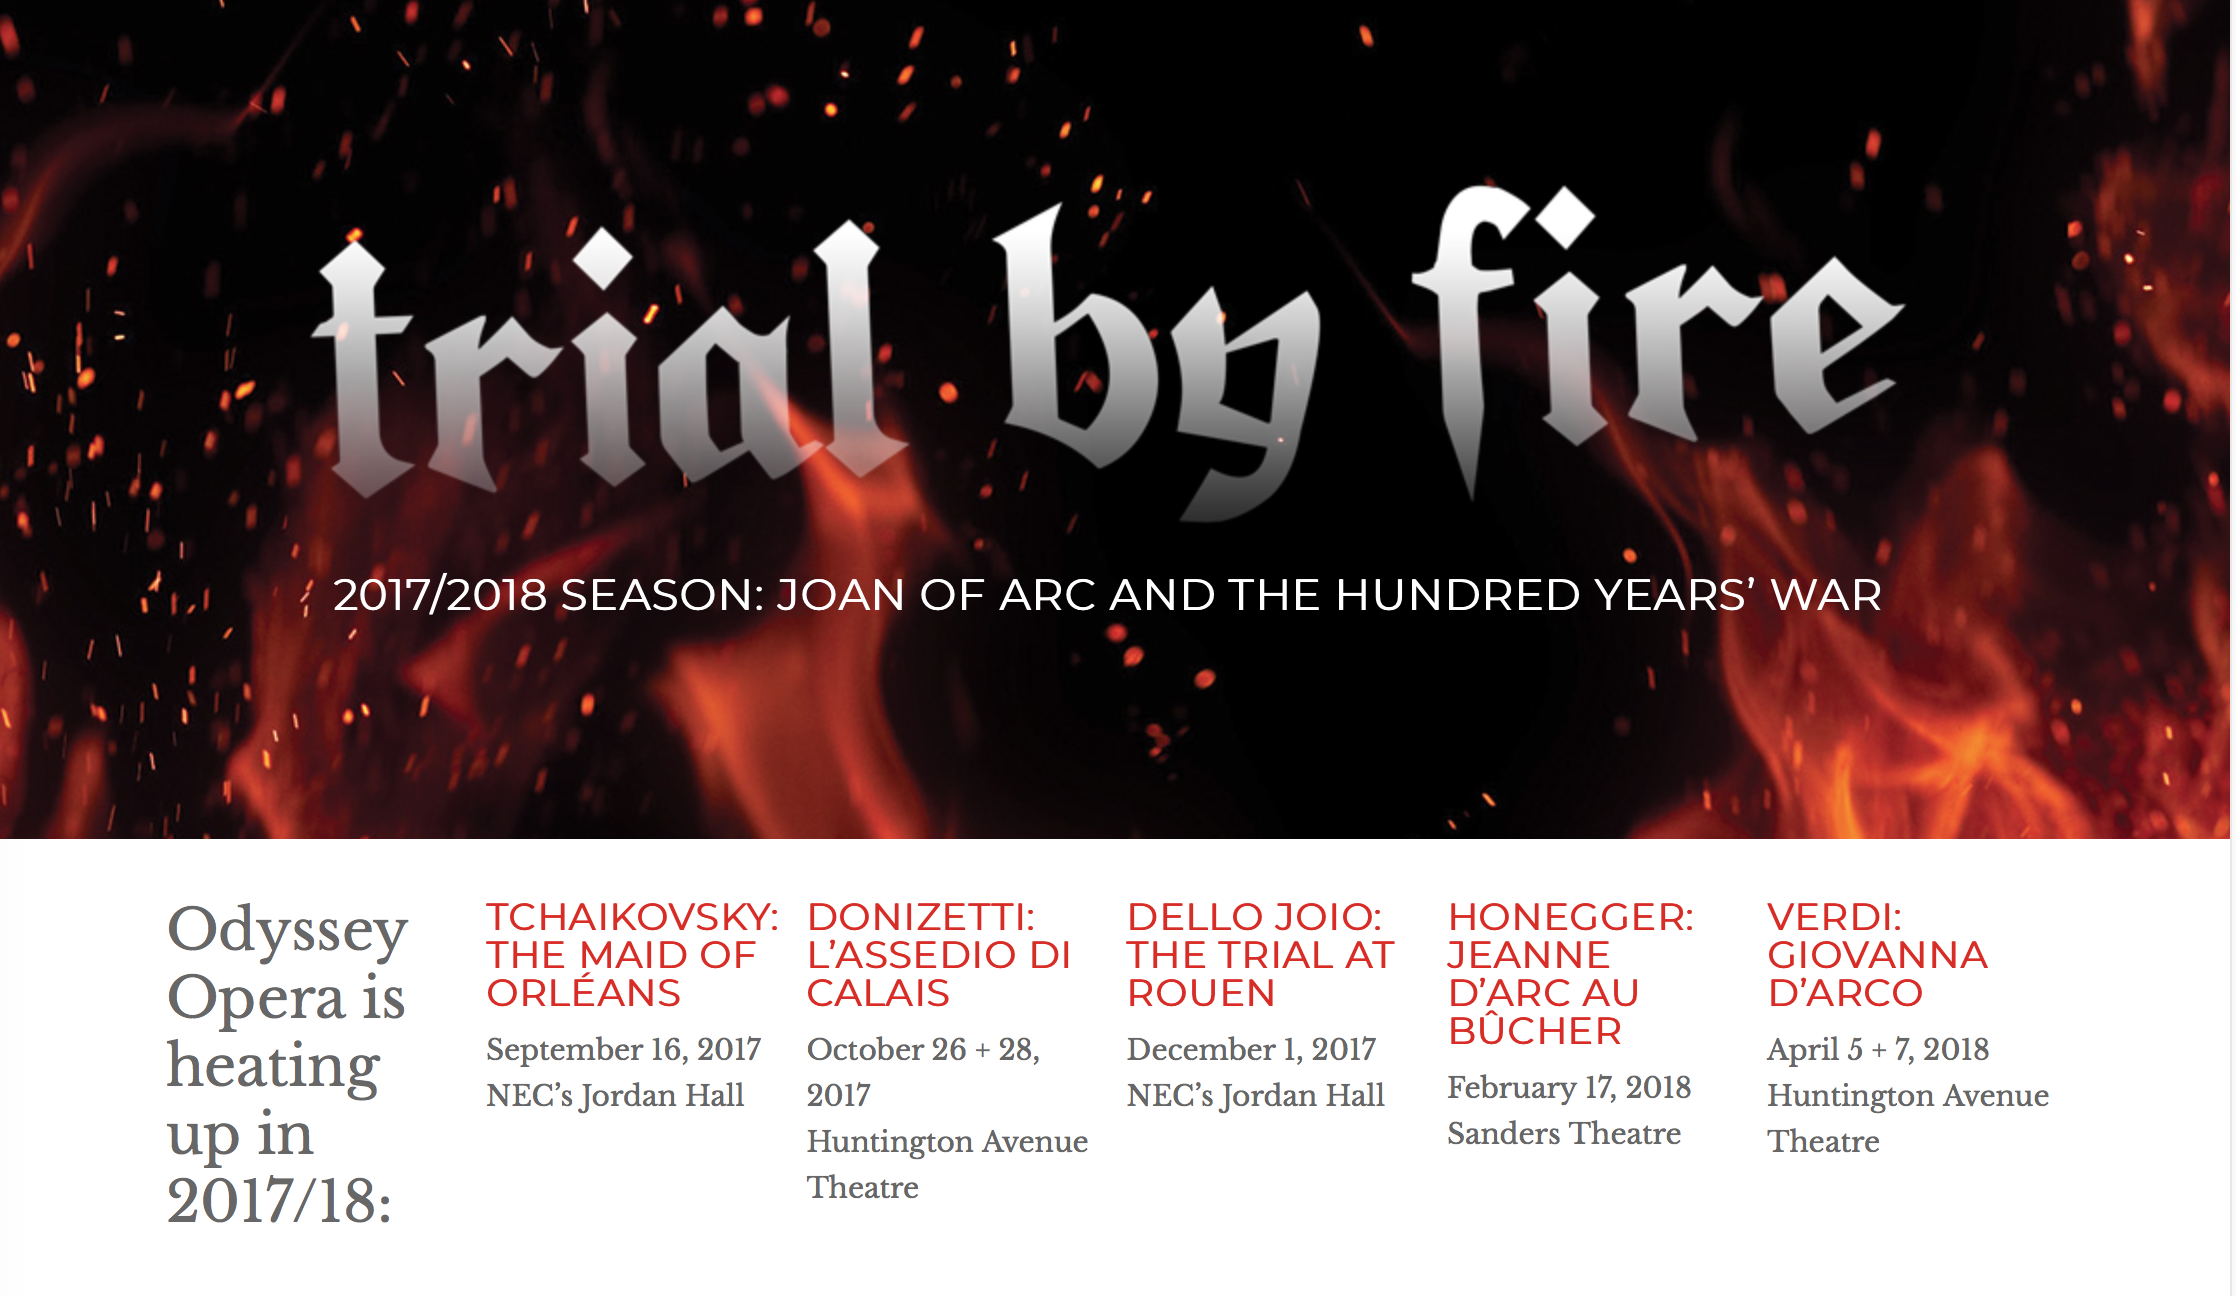 trial by fire program.png